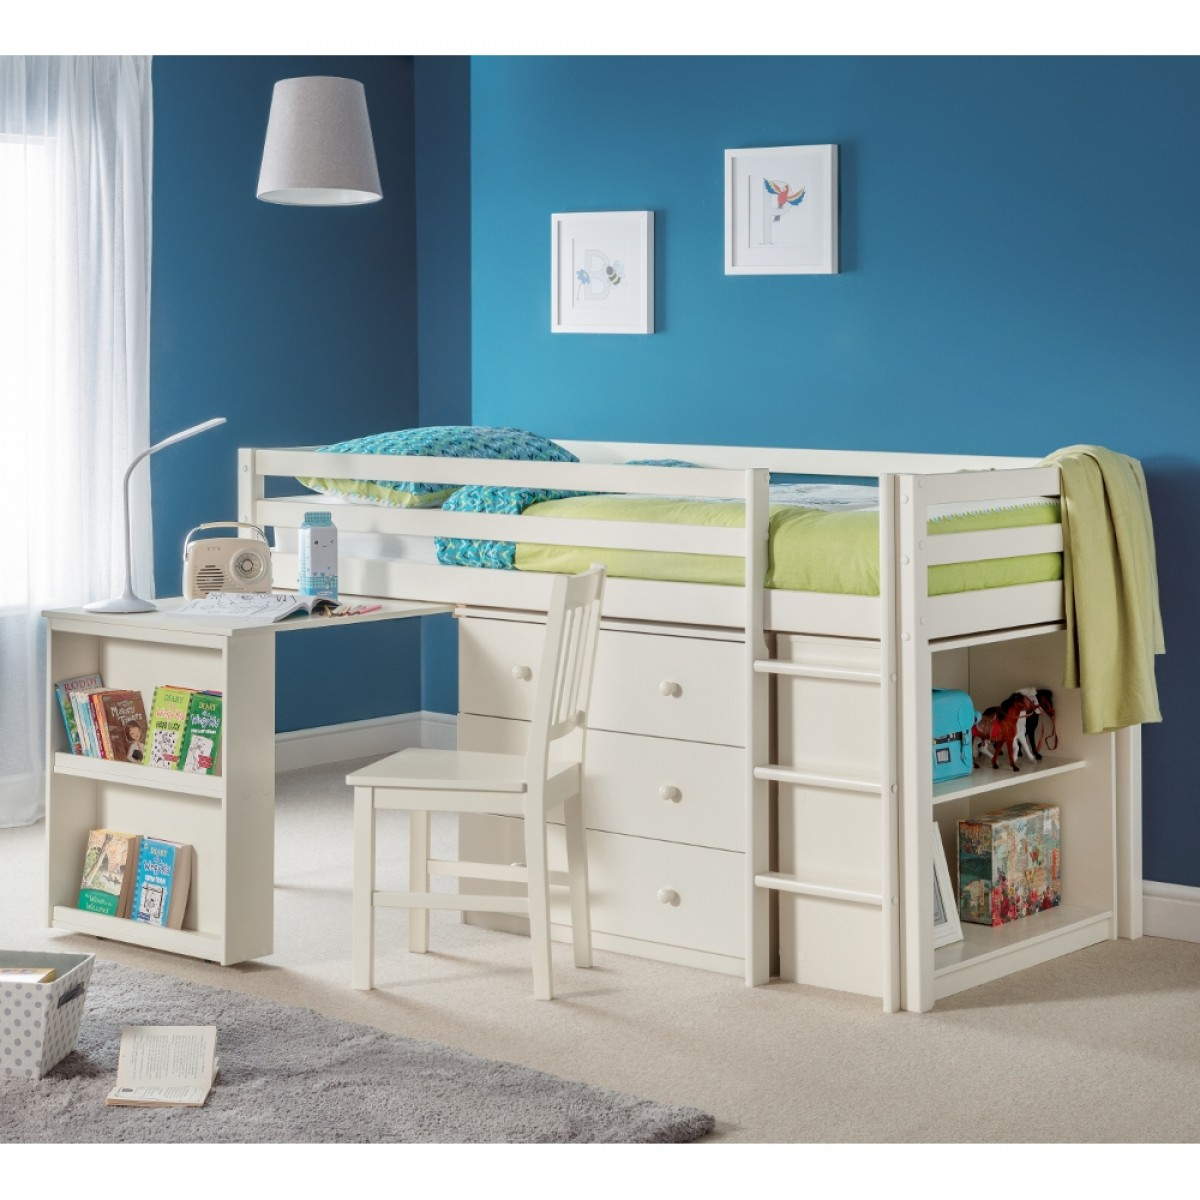 Roxy Stone White Wooden Mid Sleeper